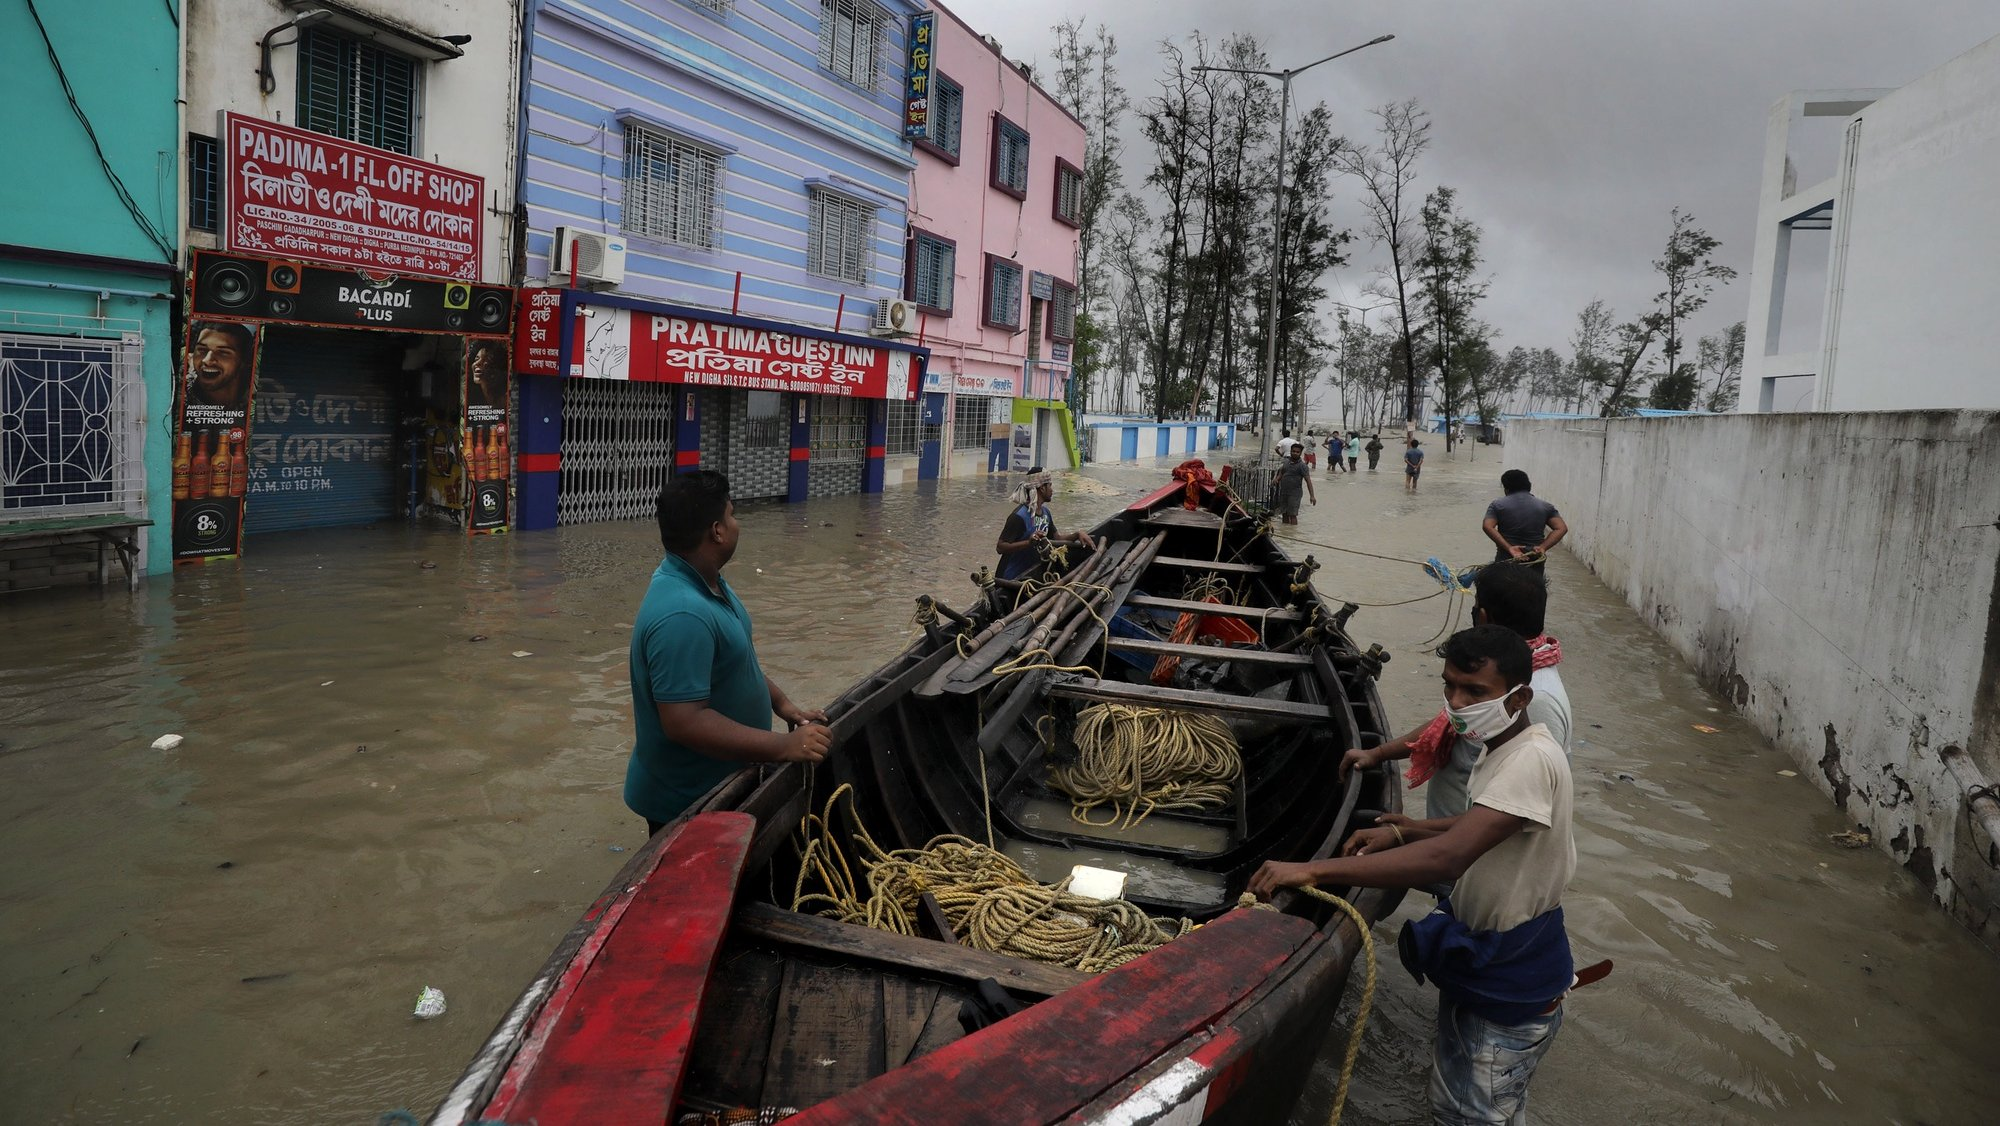 epa09228287 Villagers prepare a boat to rescue people amid a flood as Cyclone Yaas makes landfall in Digha, near the Bay of Bengal, south of Kolkata, India, 26 May 2021. The Odisha and Bengal governments started the evacuation of at-risk areas, as Cyclone Yaas hits the eastern coast of India.  EPA/PIYAL ADHIKARY